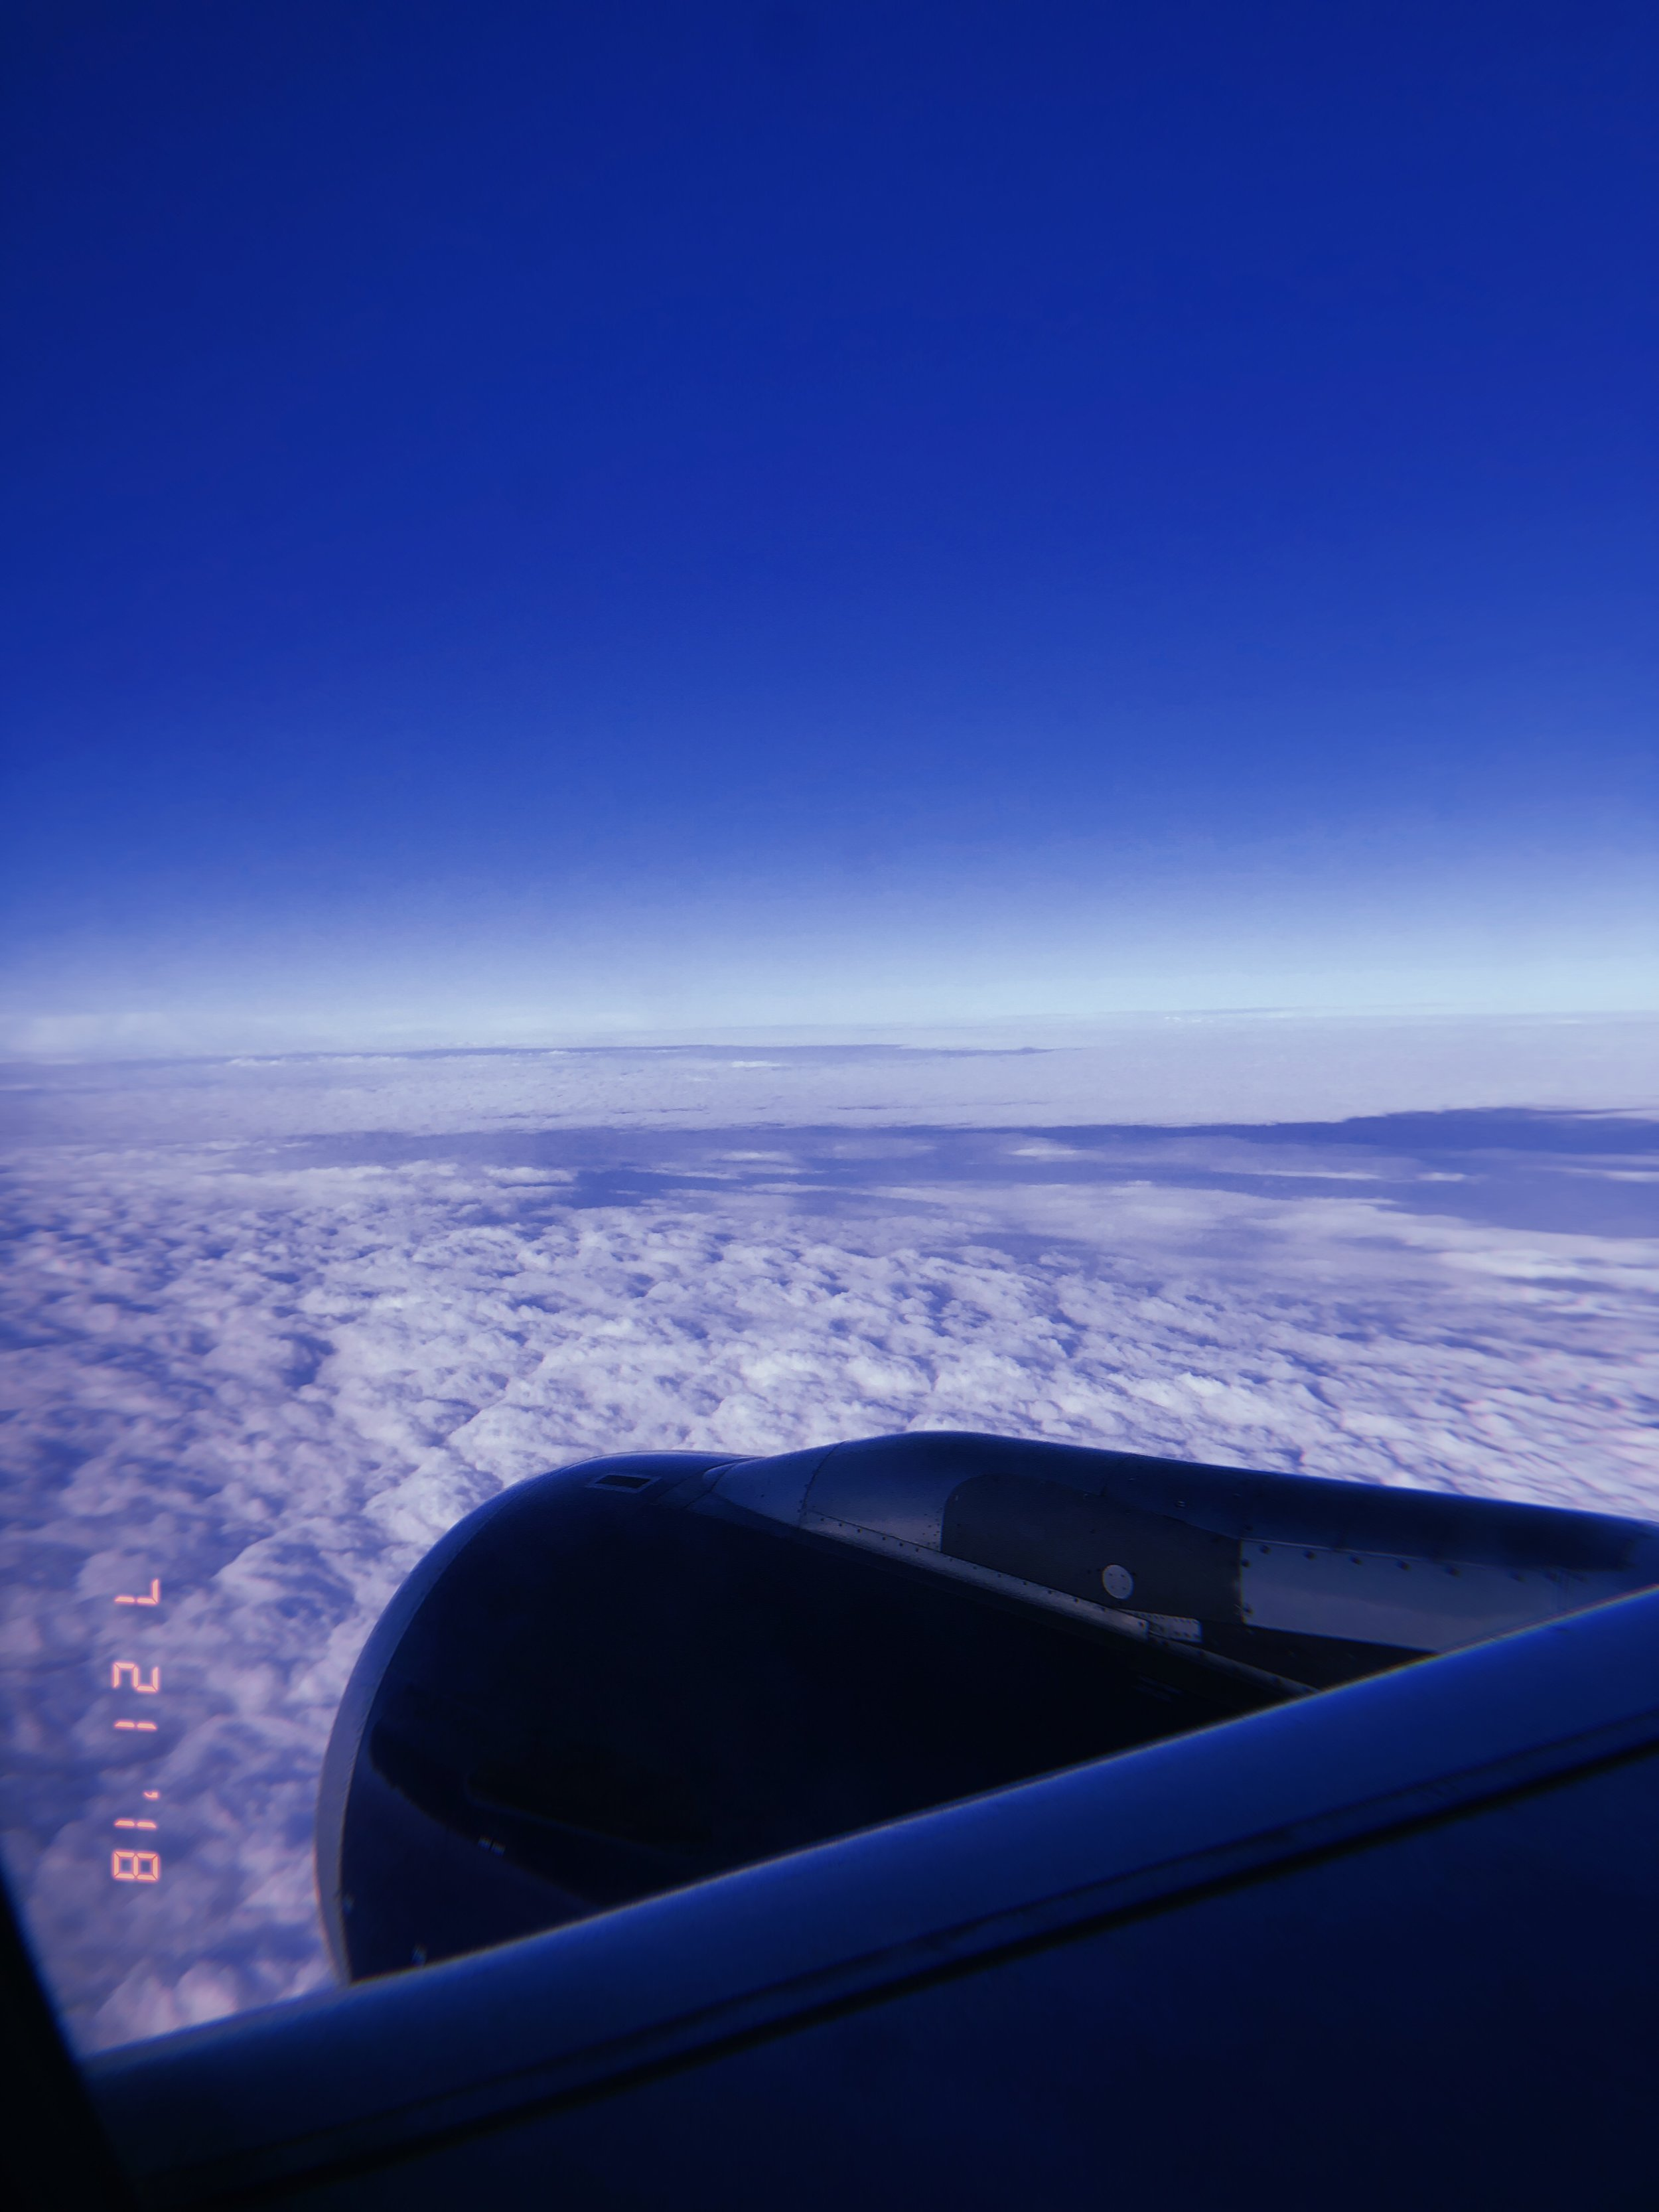 Somewhere Over the Clouds